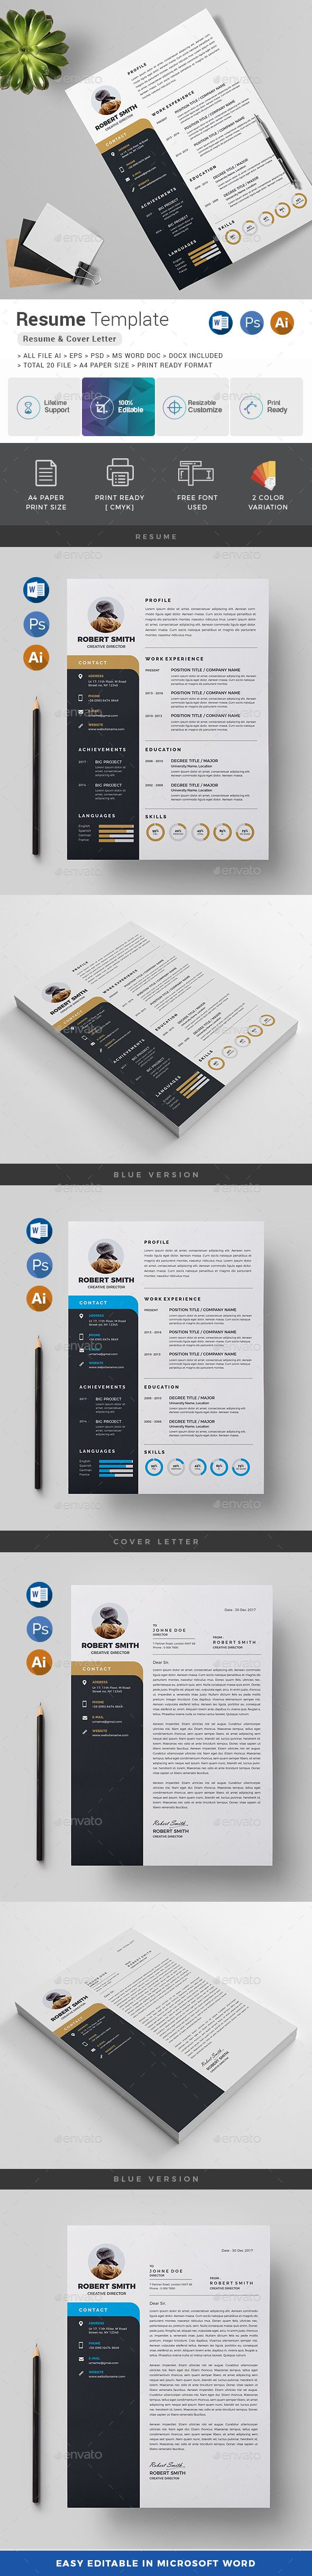 Resume  Features of Resume Template      Color Versions     A4 Paper Size With Bleeds     Quick and easy to customize templates     Change Customize easily in MS WORD, PSD & Illustrator     Professional and clean structured files